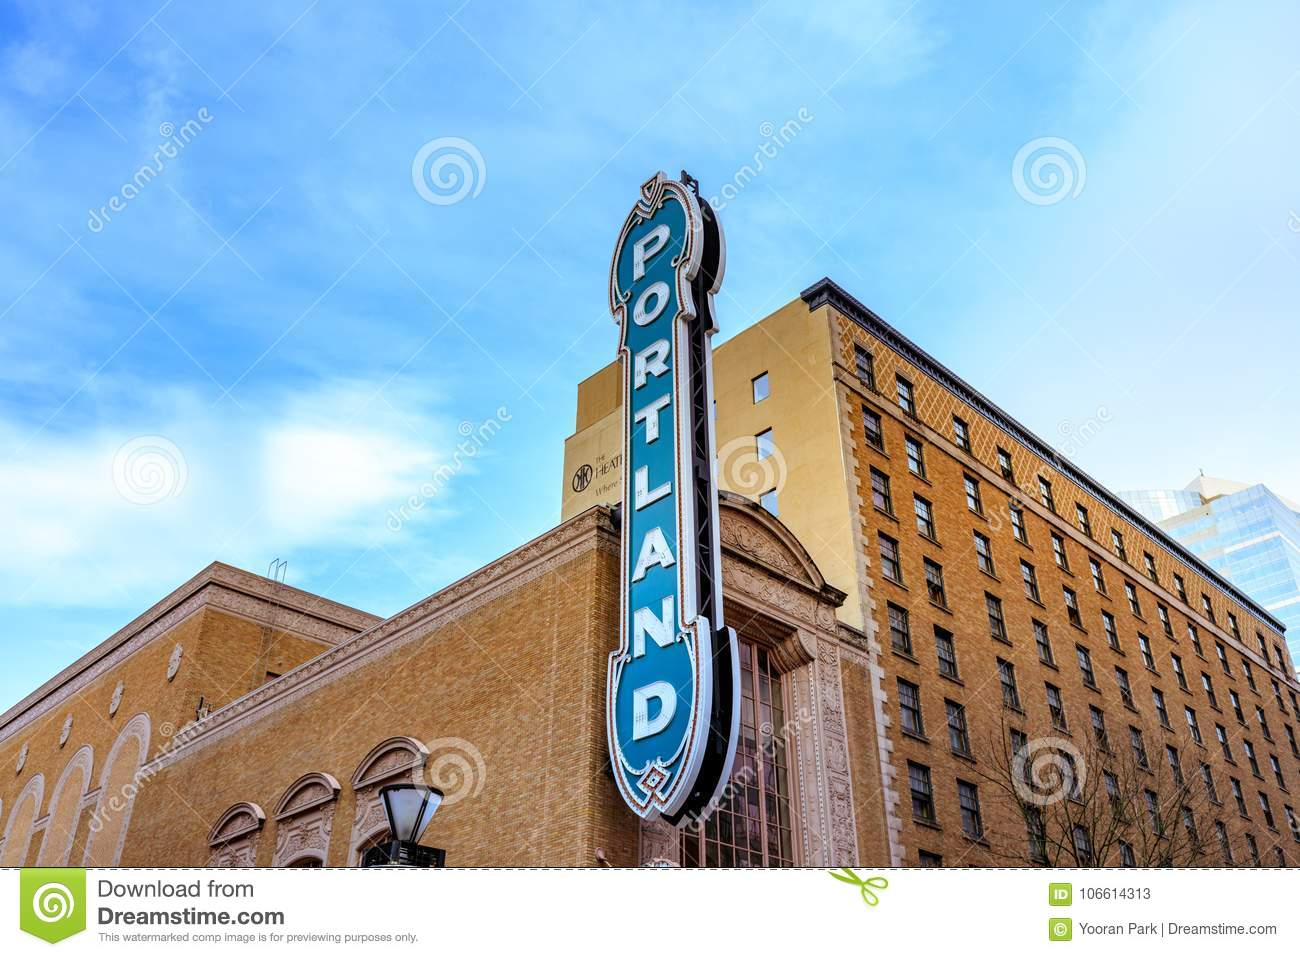 The Iconic Portland Sign Of Arlene Schnitzer Concert Hall In Dow - Arlene schnitzer concert hall parking